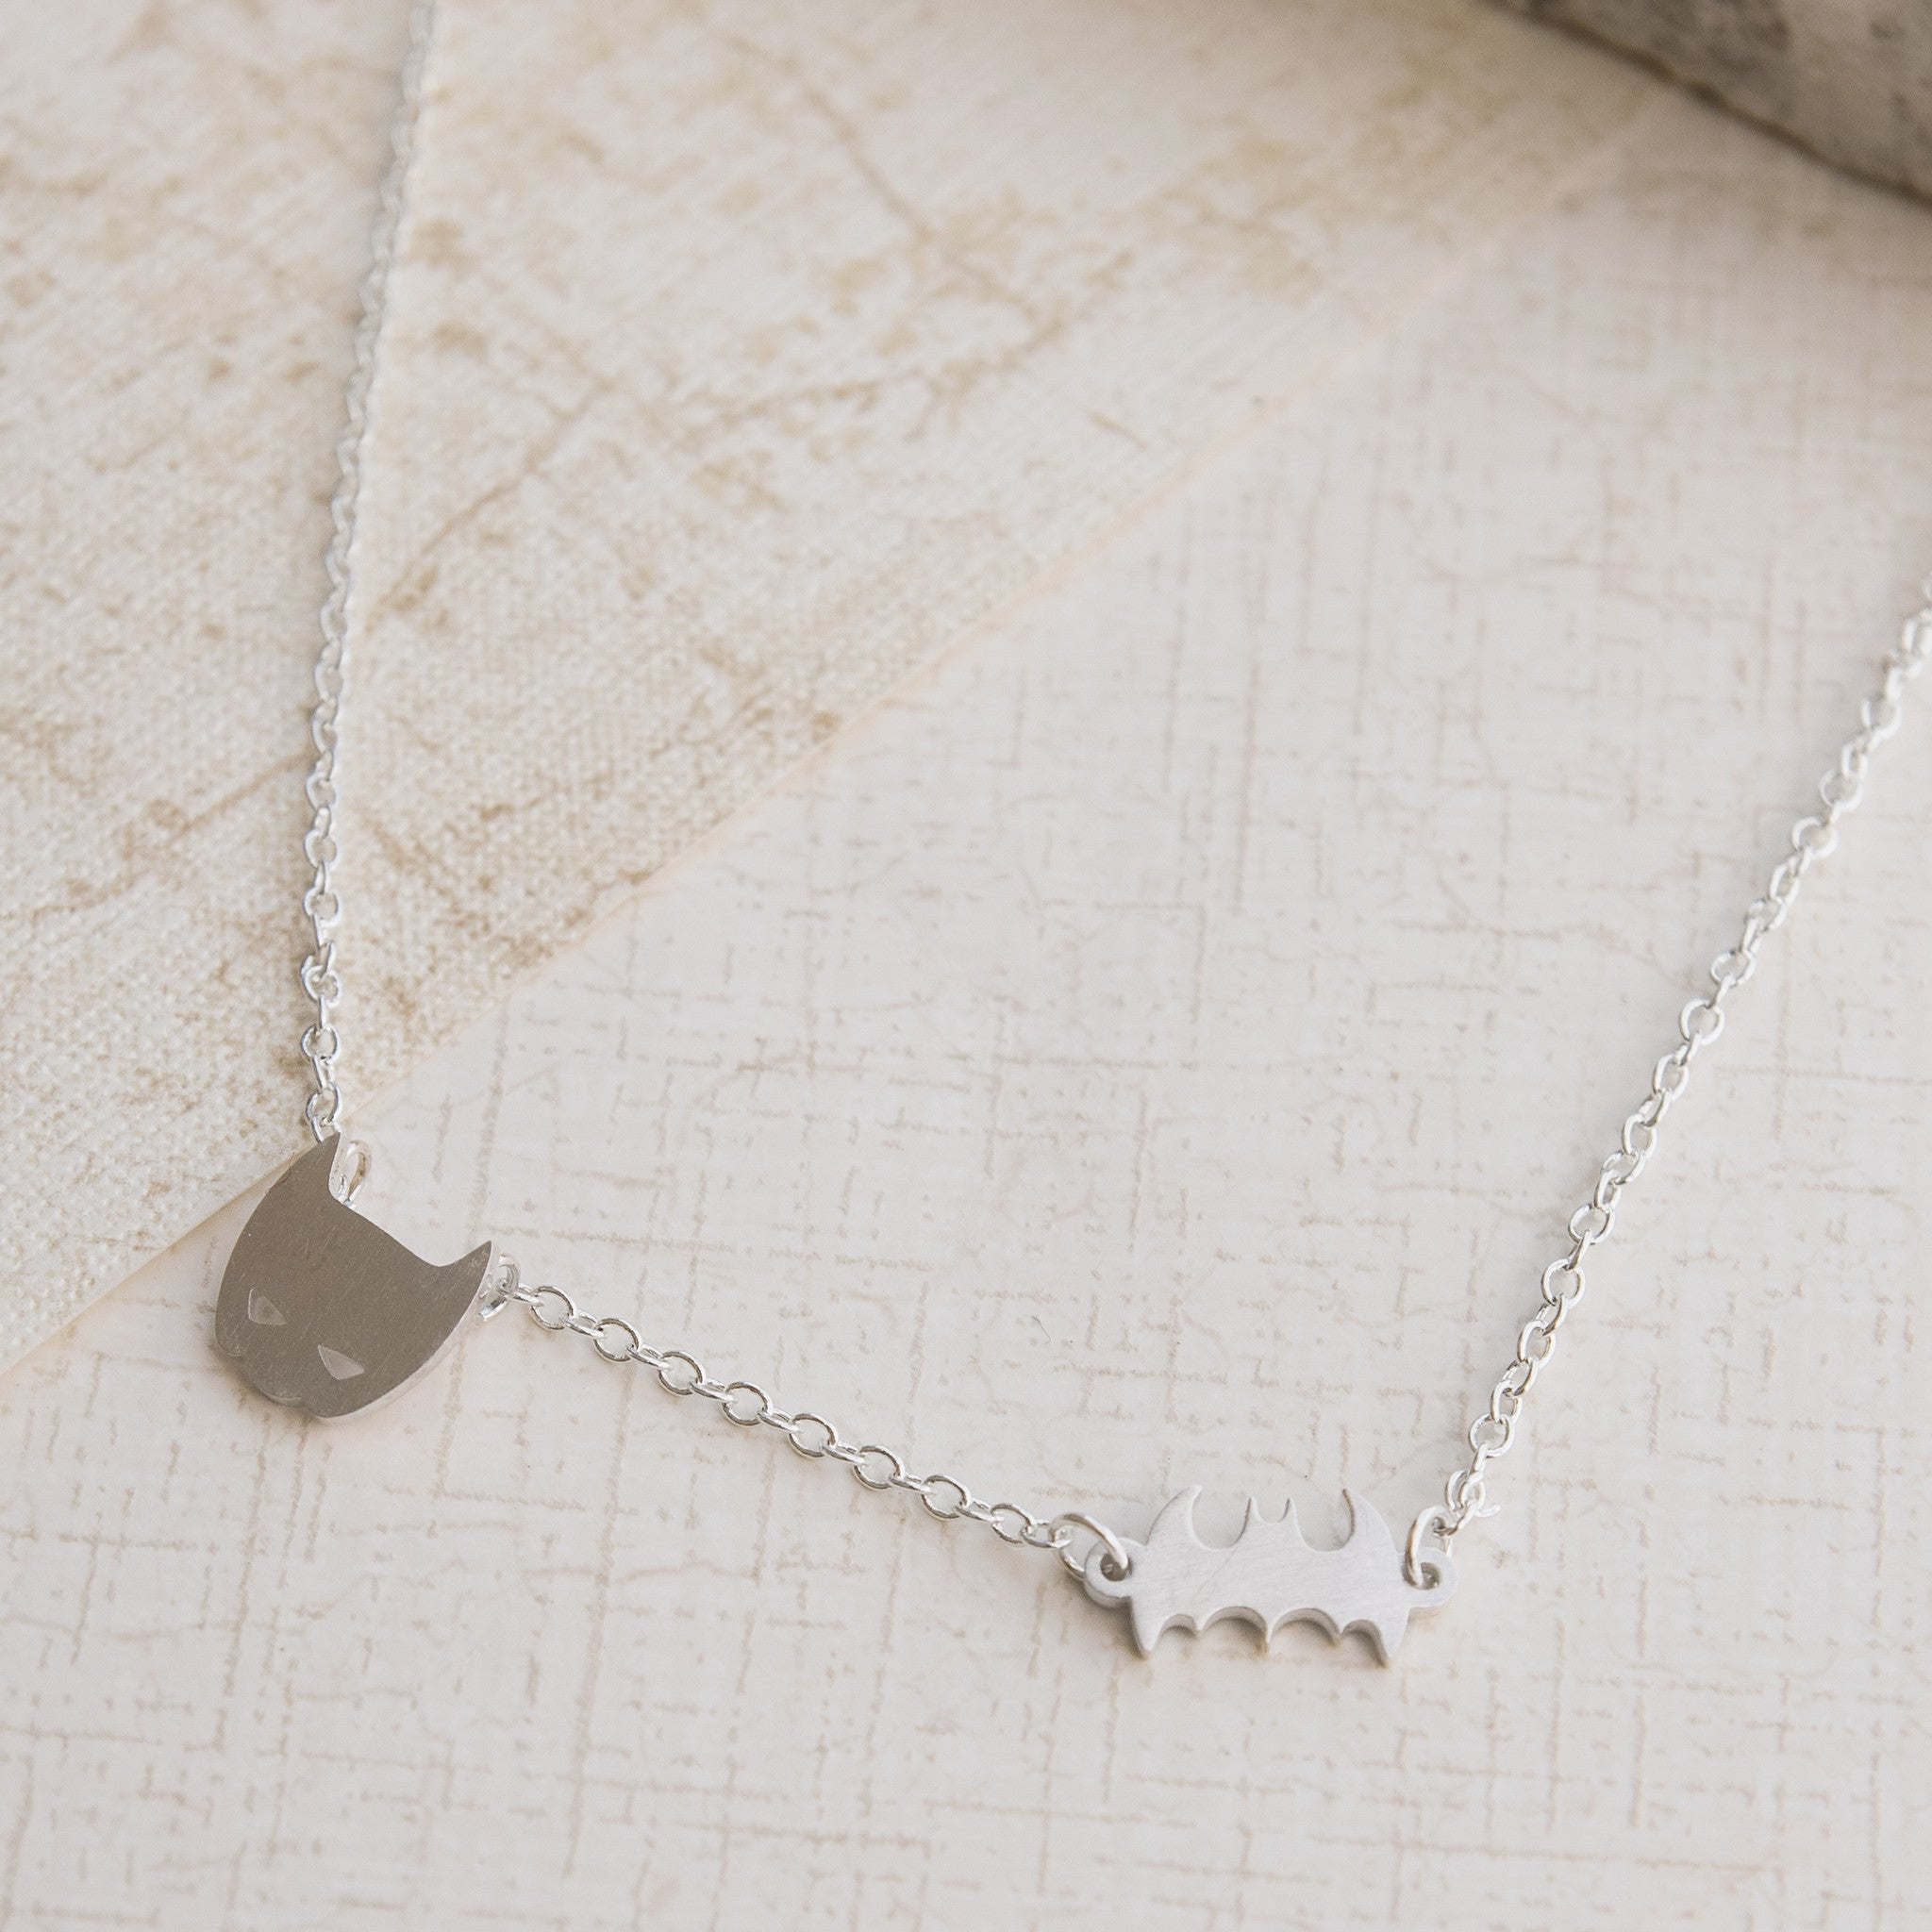 Superhero Goals Silver Necklace